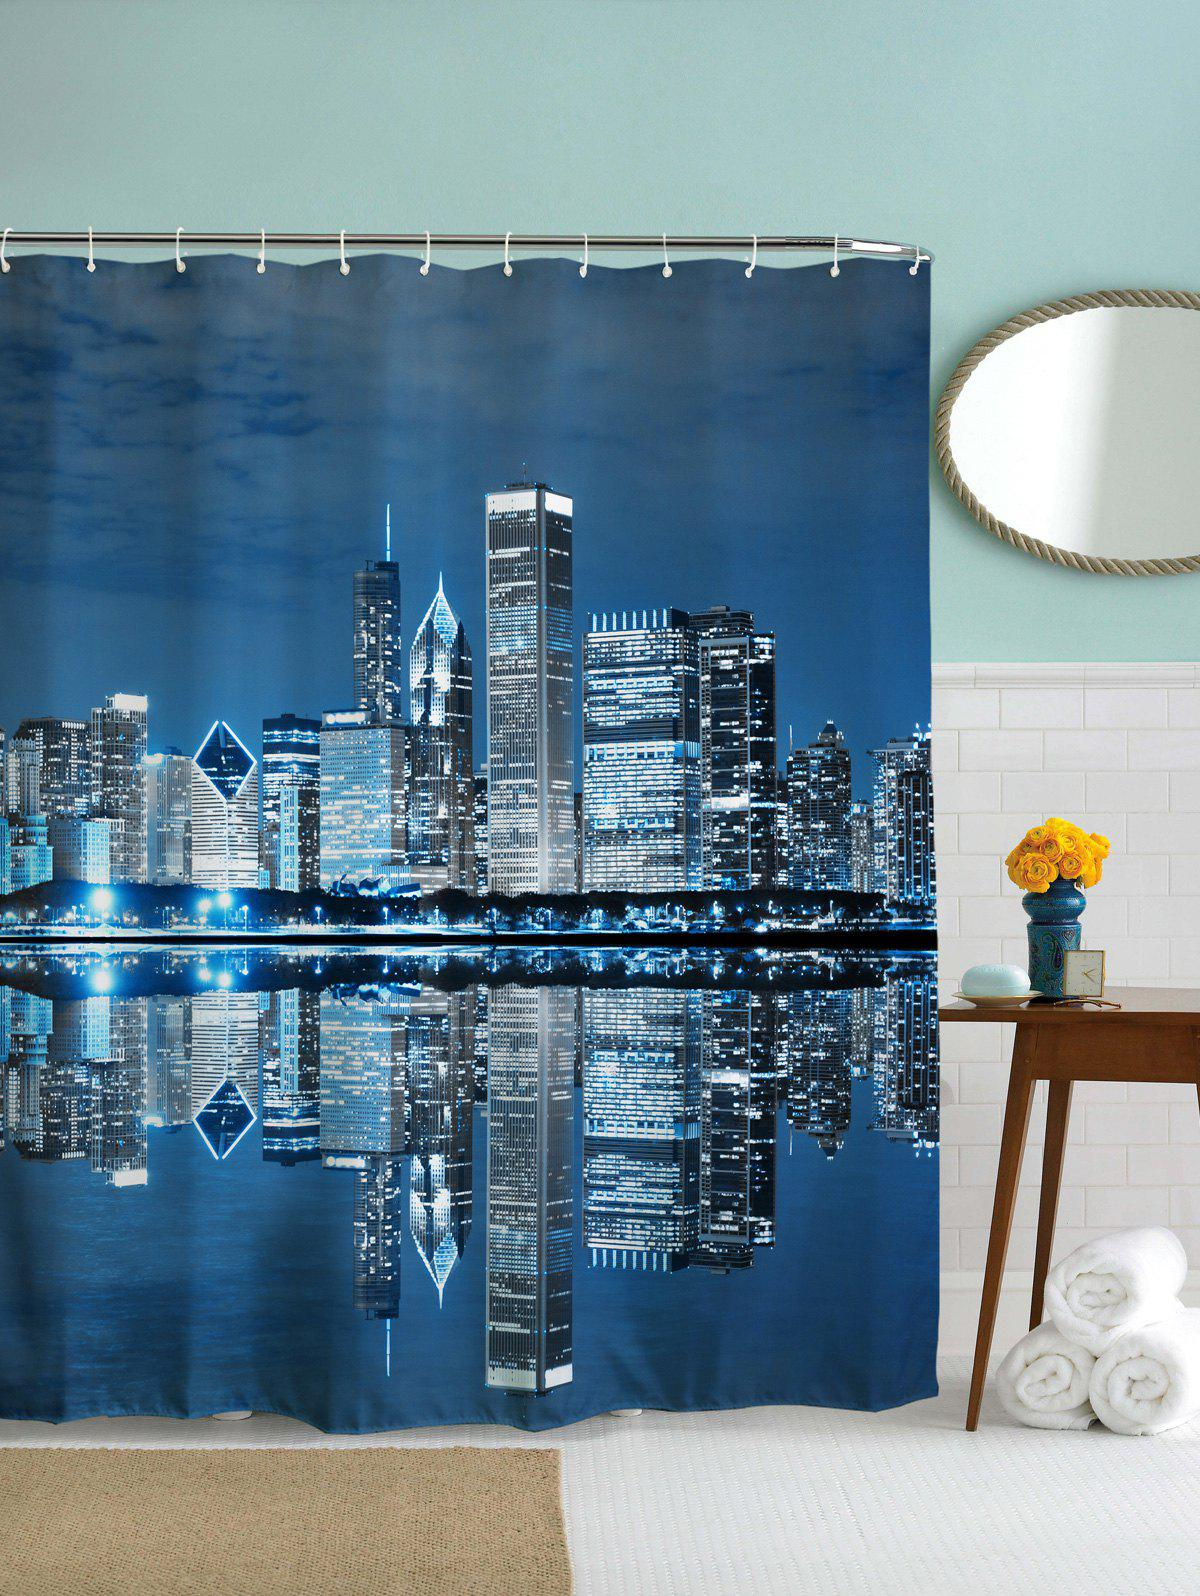 Night of City Print Waterproof Polyester Shower Curtain